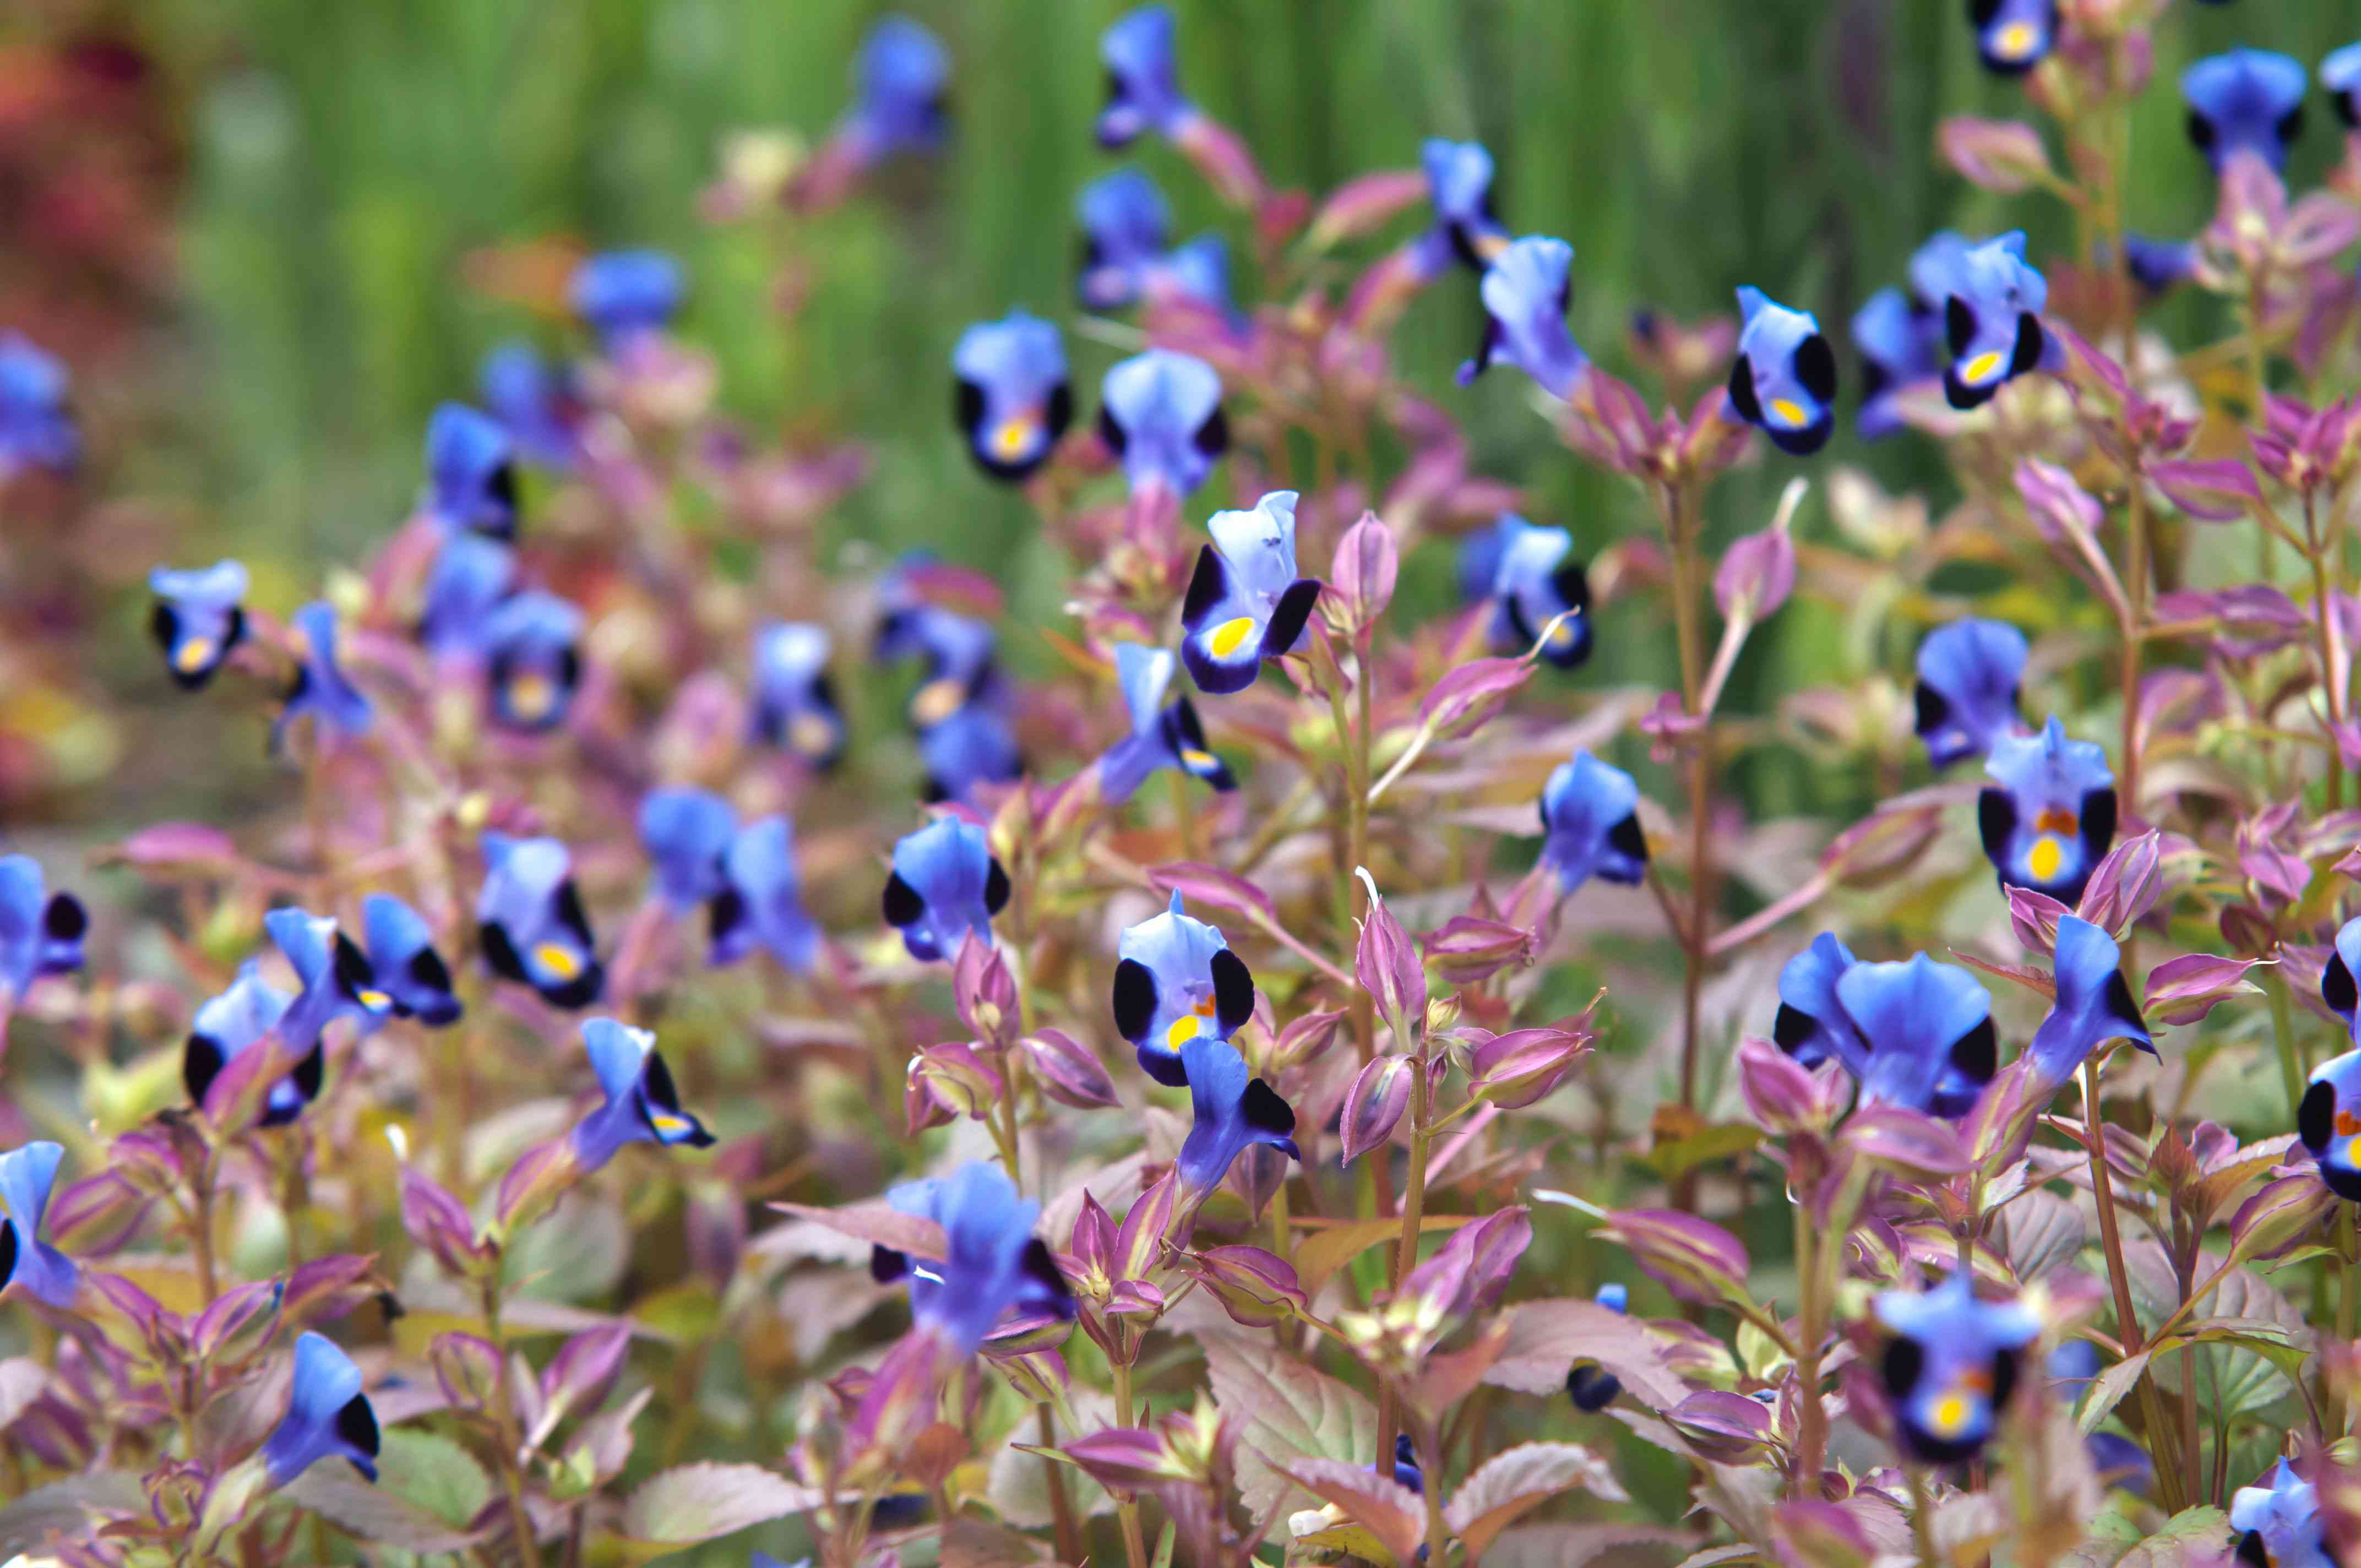 Torenia plant with small blue-purple and black flowers on thin stems with pink leaves